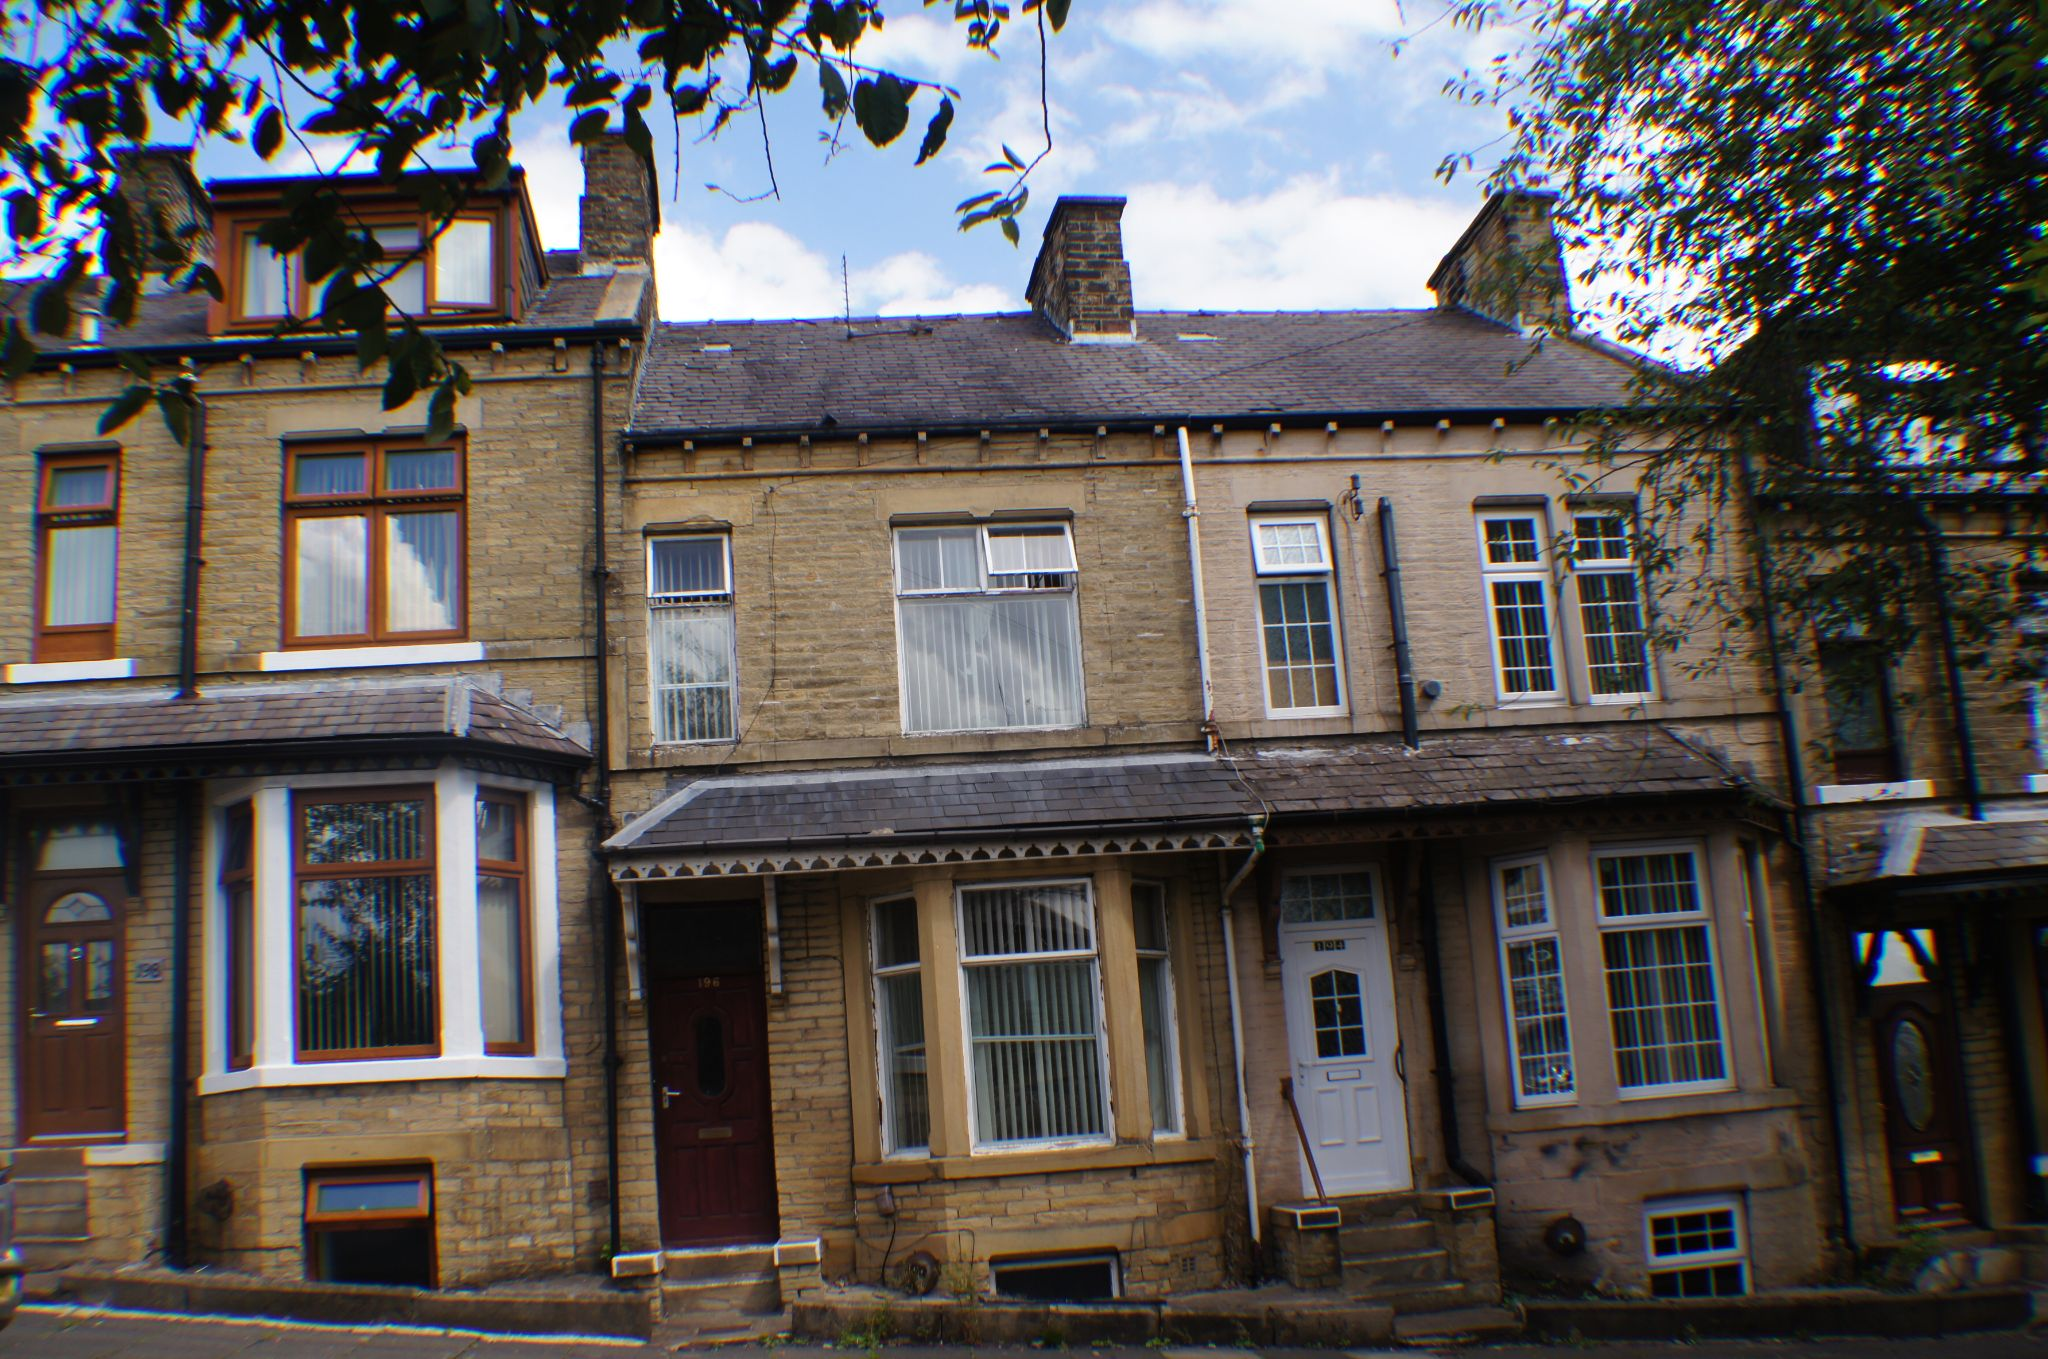 4 bedroom mid terraced house For Sale in Bradford - Photograph 13.